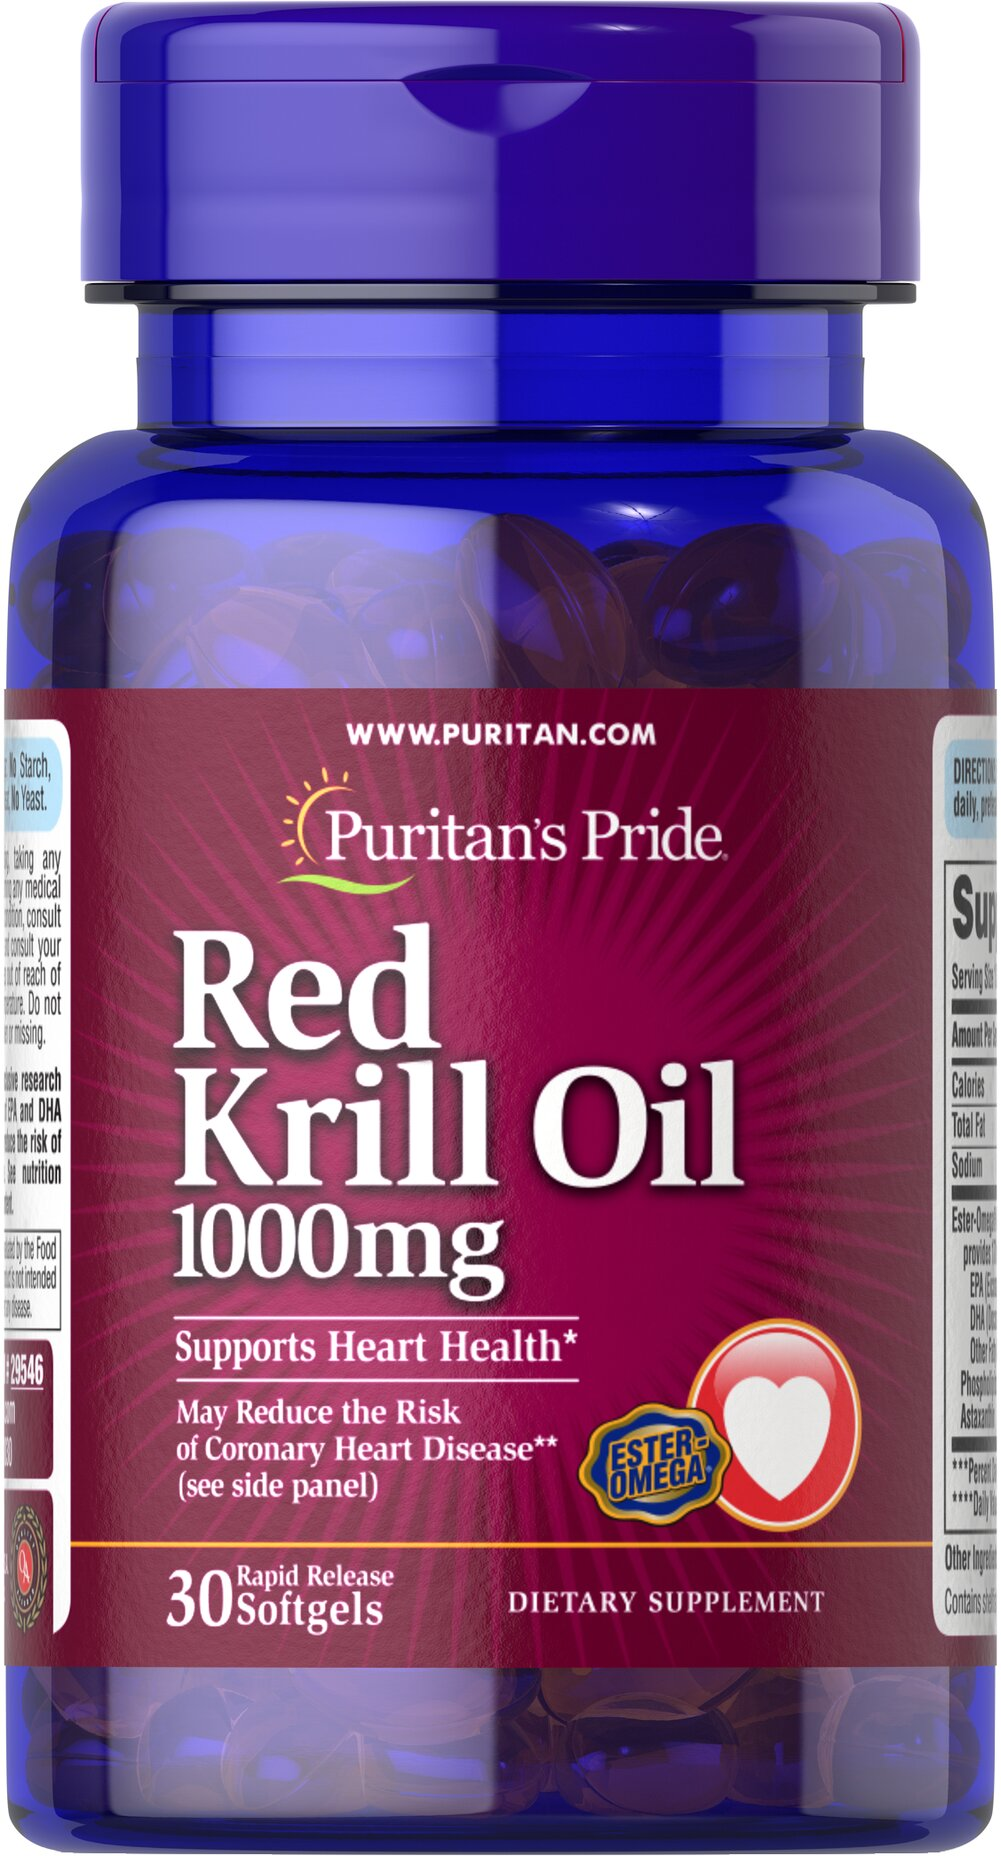 "Red Krill Oil 1000 mg (170 mg Active Omega-3) <p><strong>With Naturally Occurring Astaxanthin</strong></p><p>Harvested from the icy waters of Antarctica.</p><p>May reduce the risk of coronary heart disease◊</p><p>Supports a healthy heart**</p><p>Provides you with Omega-3 fatty acids — the ""good"" fats important for cellular and metabolic health**</p><p>Rapid release softgels facilitate quick absorption</p> 30 Soft"